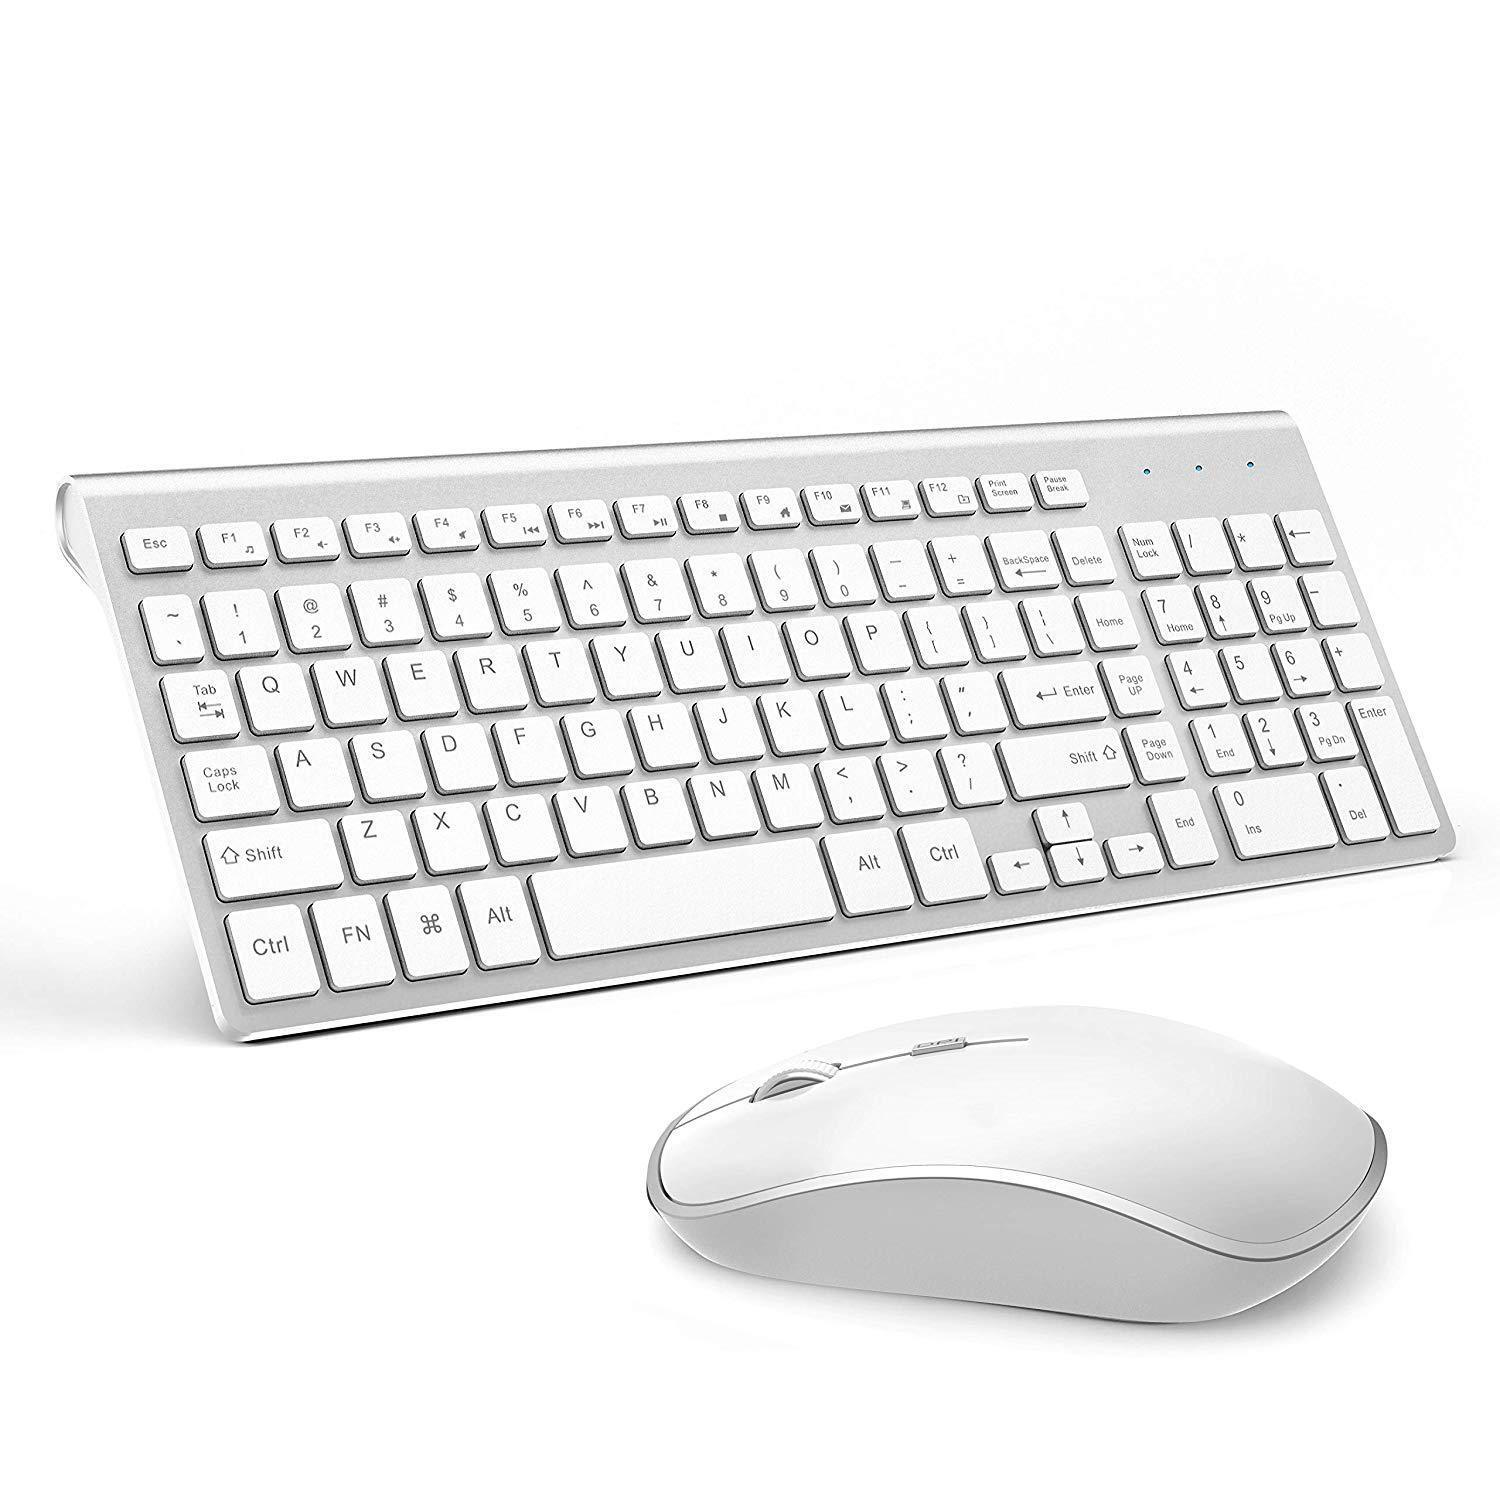 048430261db Wireless Keyboard And Mouse Bundle Combo Set For Mac Apple Full Size 2.4G  Slim